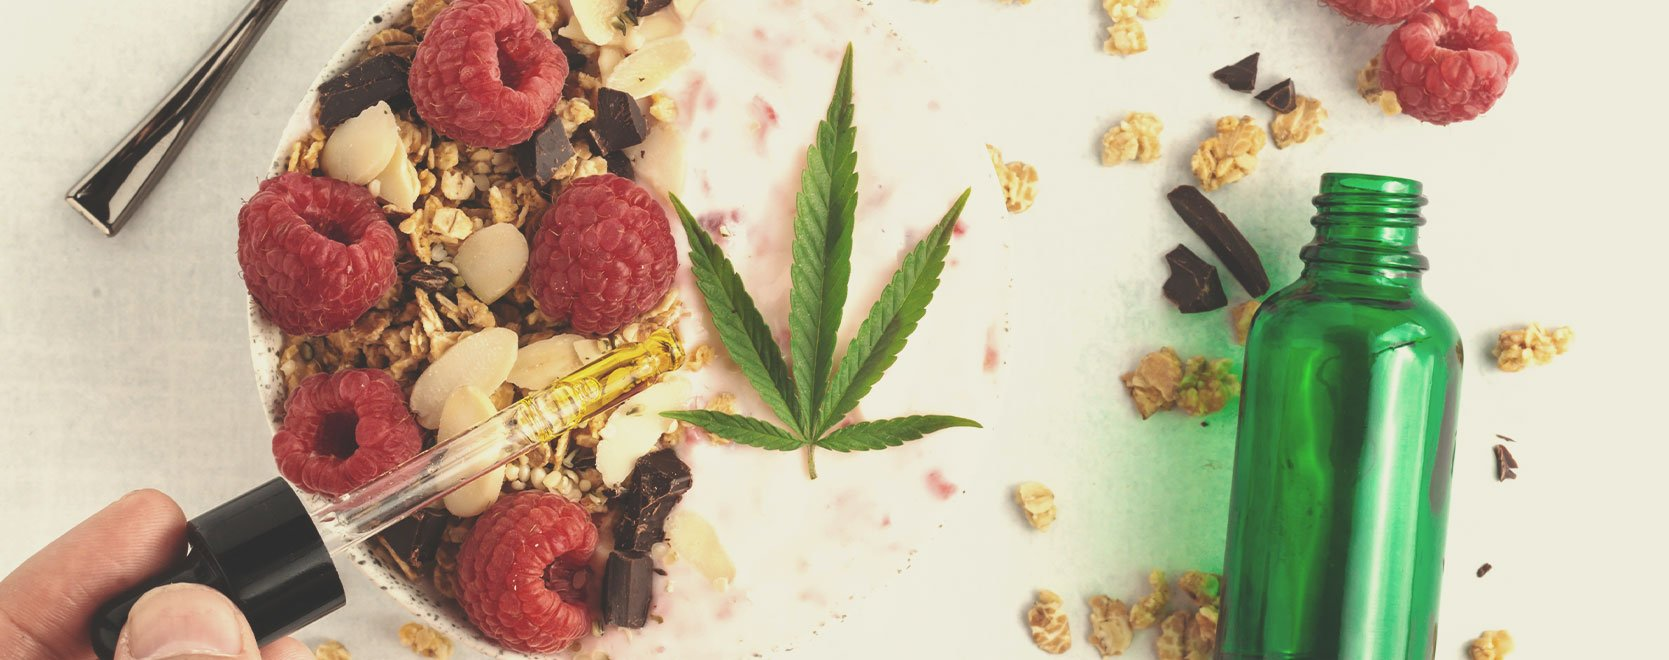 What's the best way to retain terpenes while cooking?